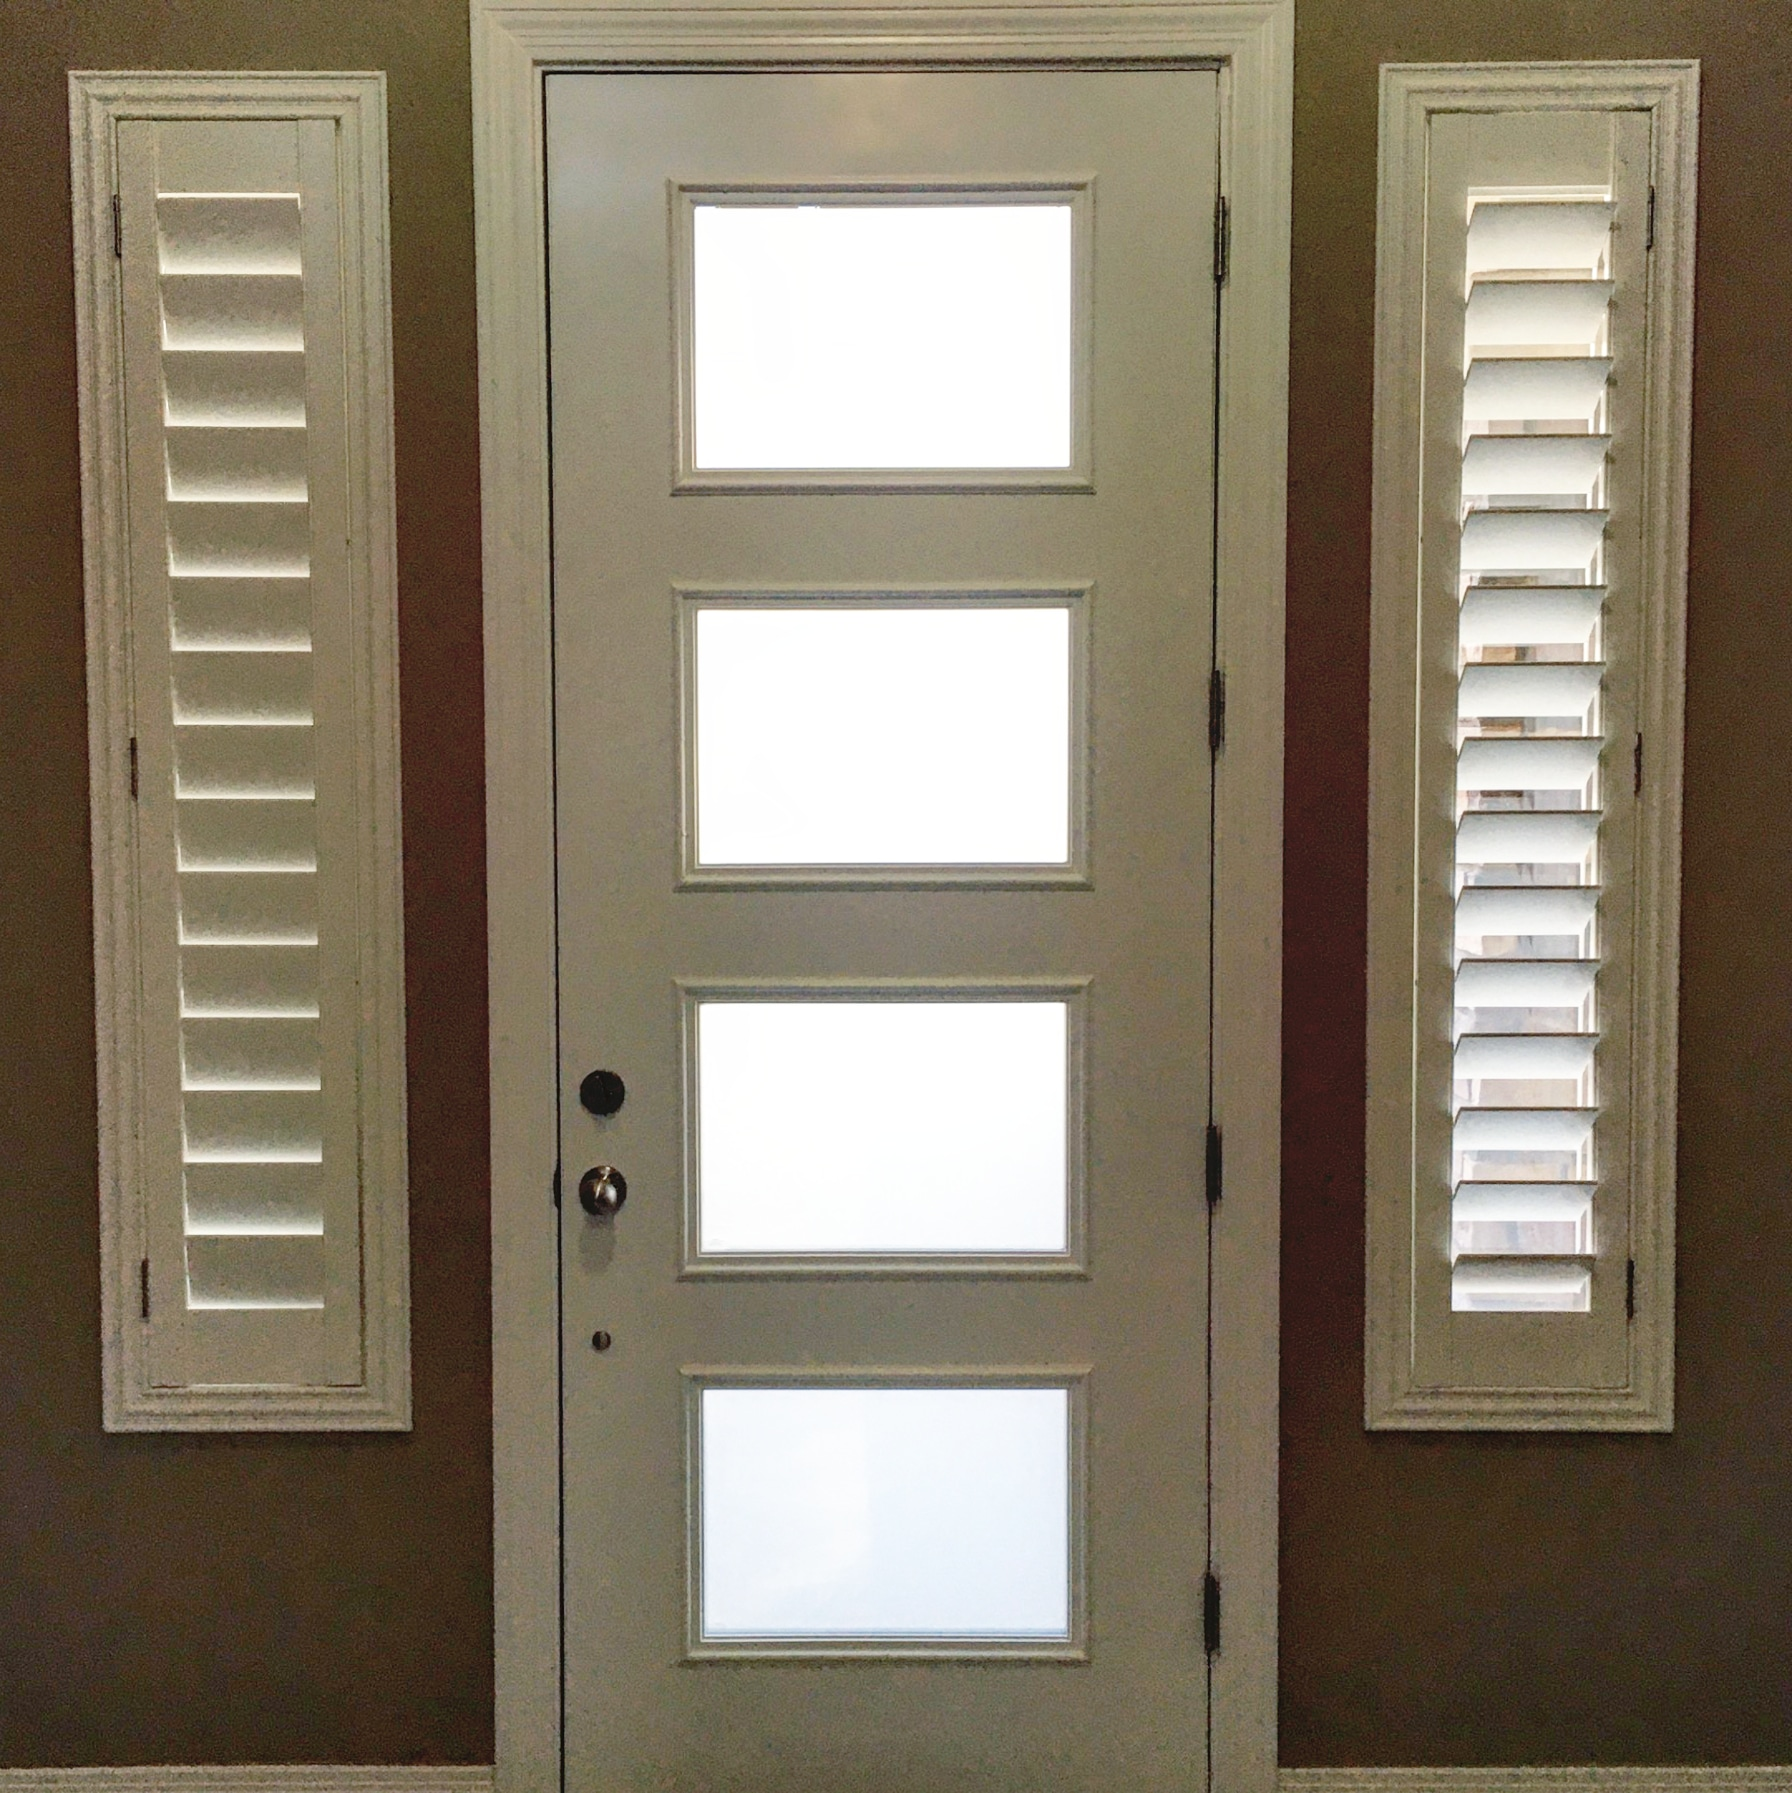 Arizona Window and Door in Scottsdale and Tucson showing front door with windows